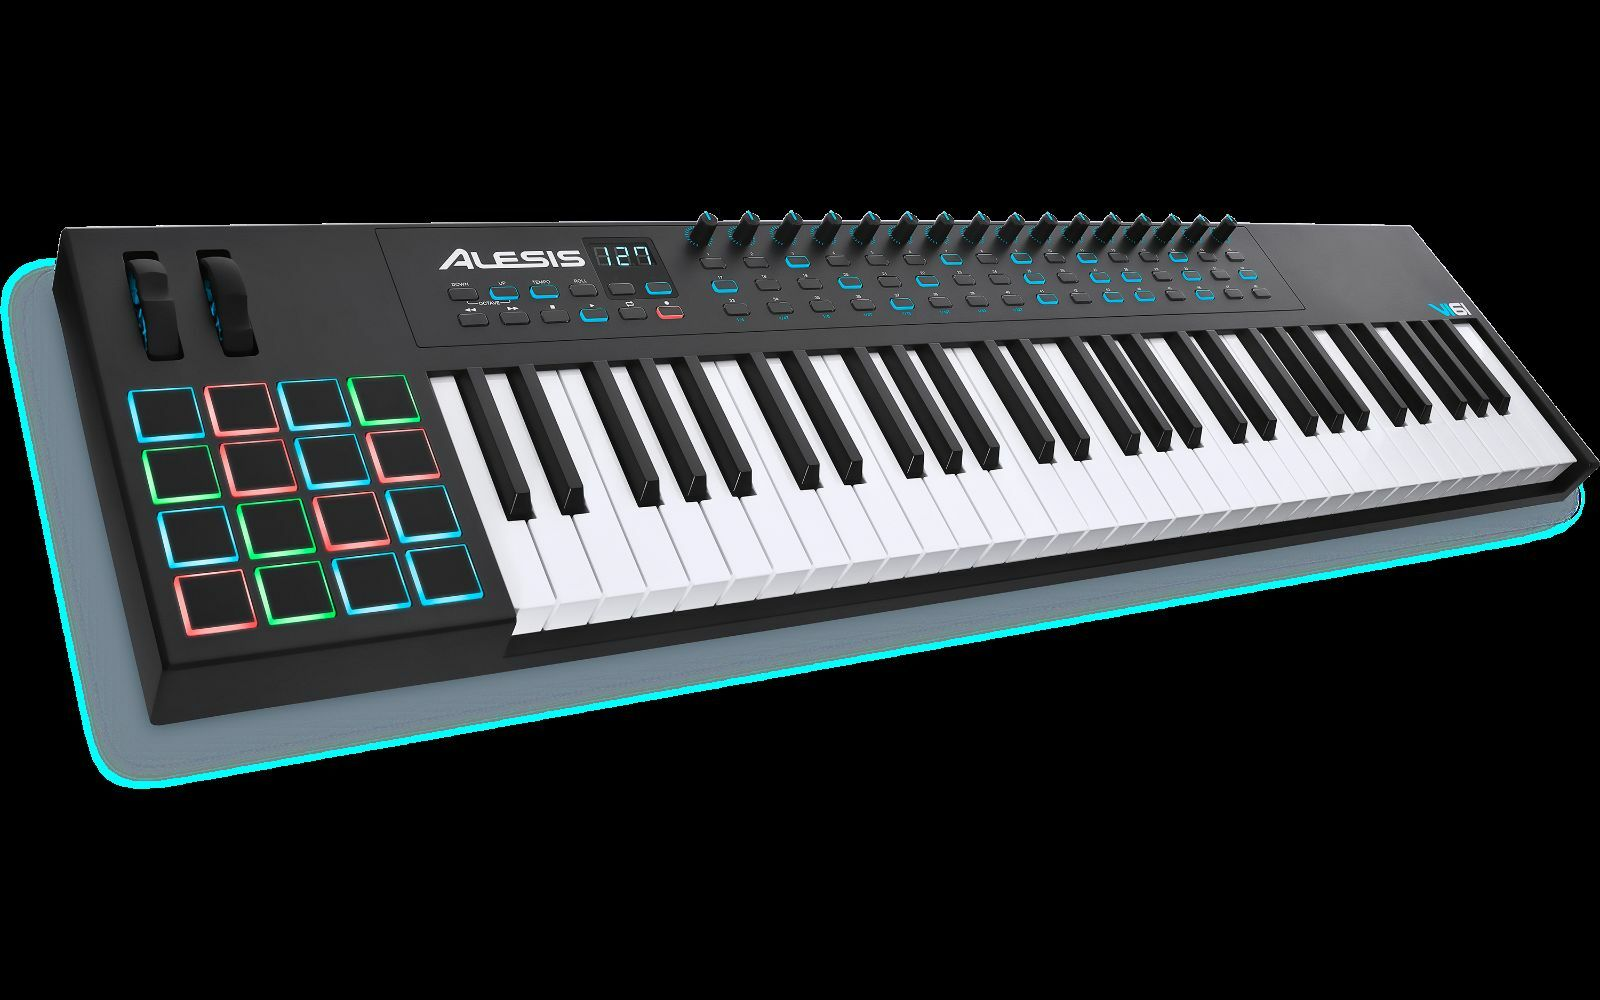 alesis vi61 61 key usb midi keyboard controller ebay. Black Bedroom Furniture Sets. Home Design Ideas